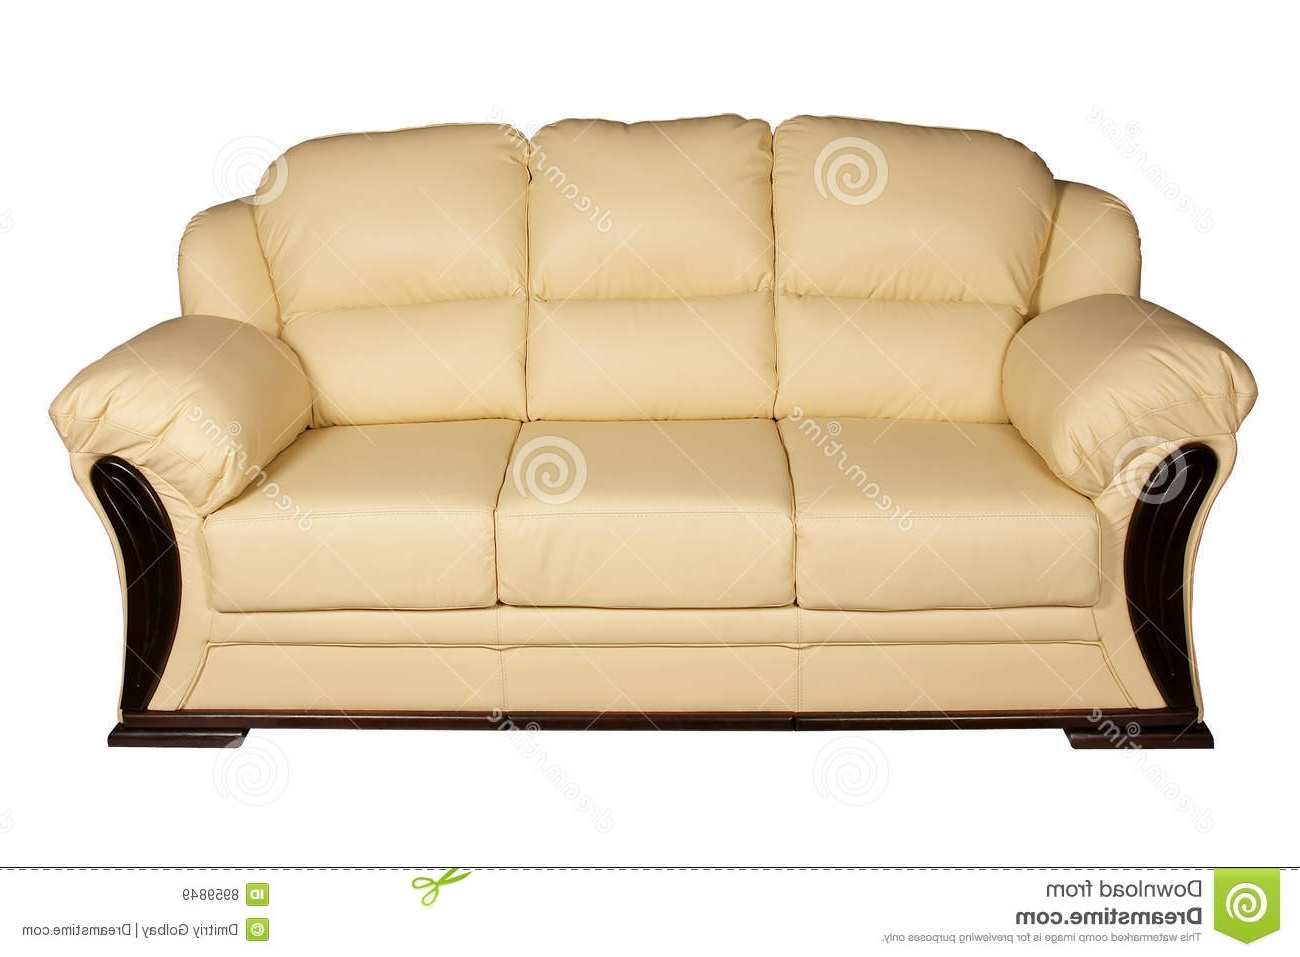 Cream Colored Sofas With Regard To Current Perfect Cream Colored Sofa 27 For Office Sofa Ideas With Cream (View 5 of 20)